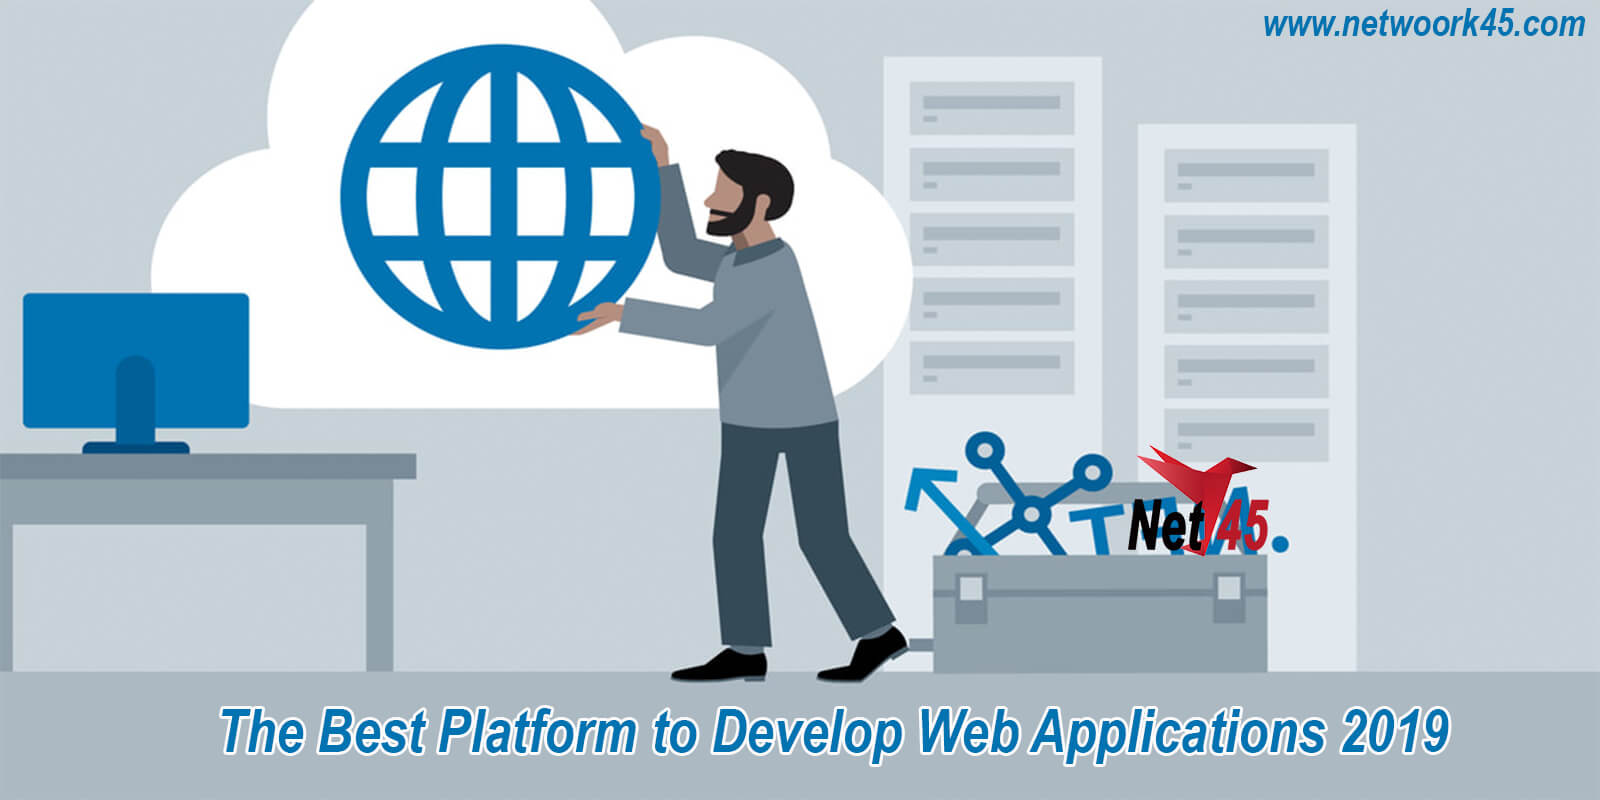 mobile web app development tools, best language to learn for app development, best programming language for web application development, latest technology for w, top 10 app developm, hybrid mobile app deve, web application develo, hybrid app developm, best app development